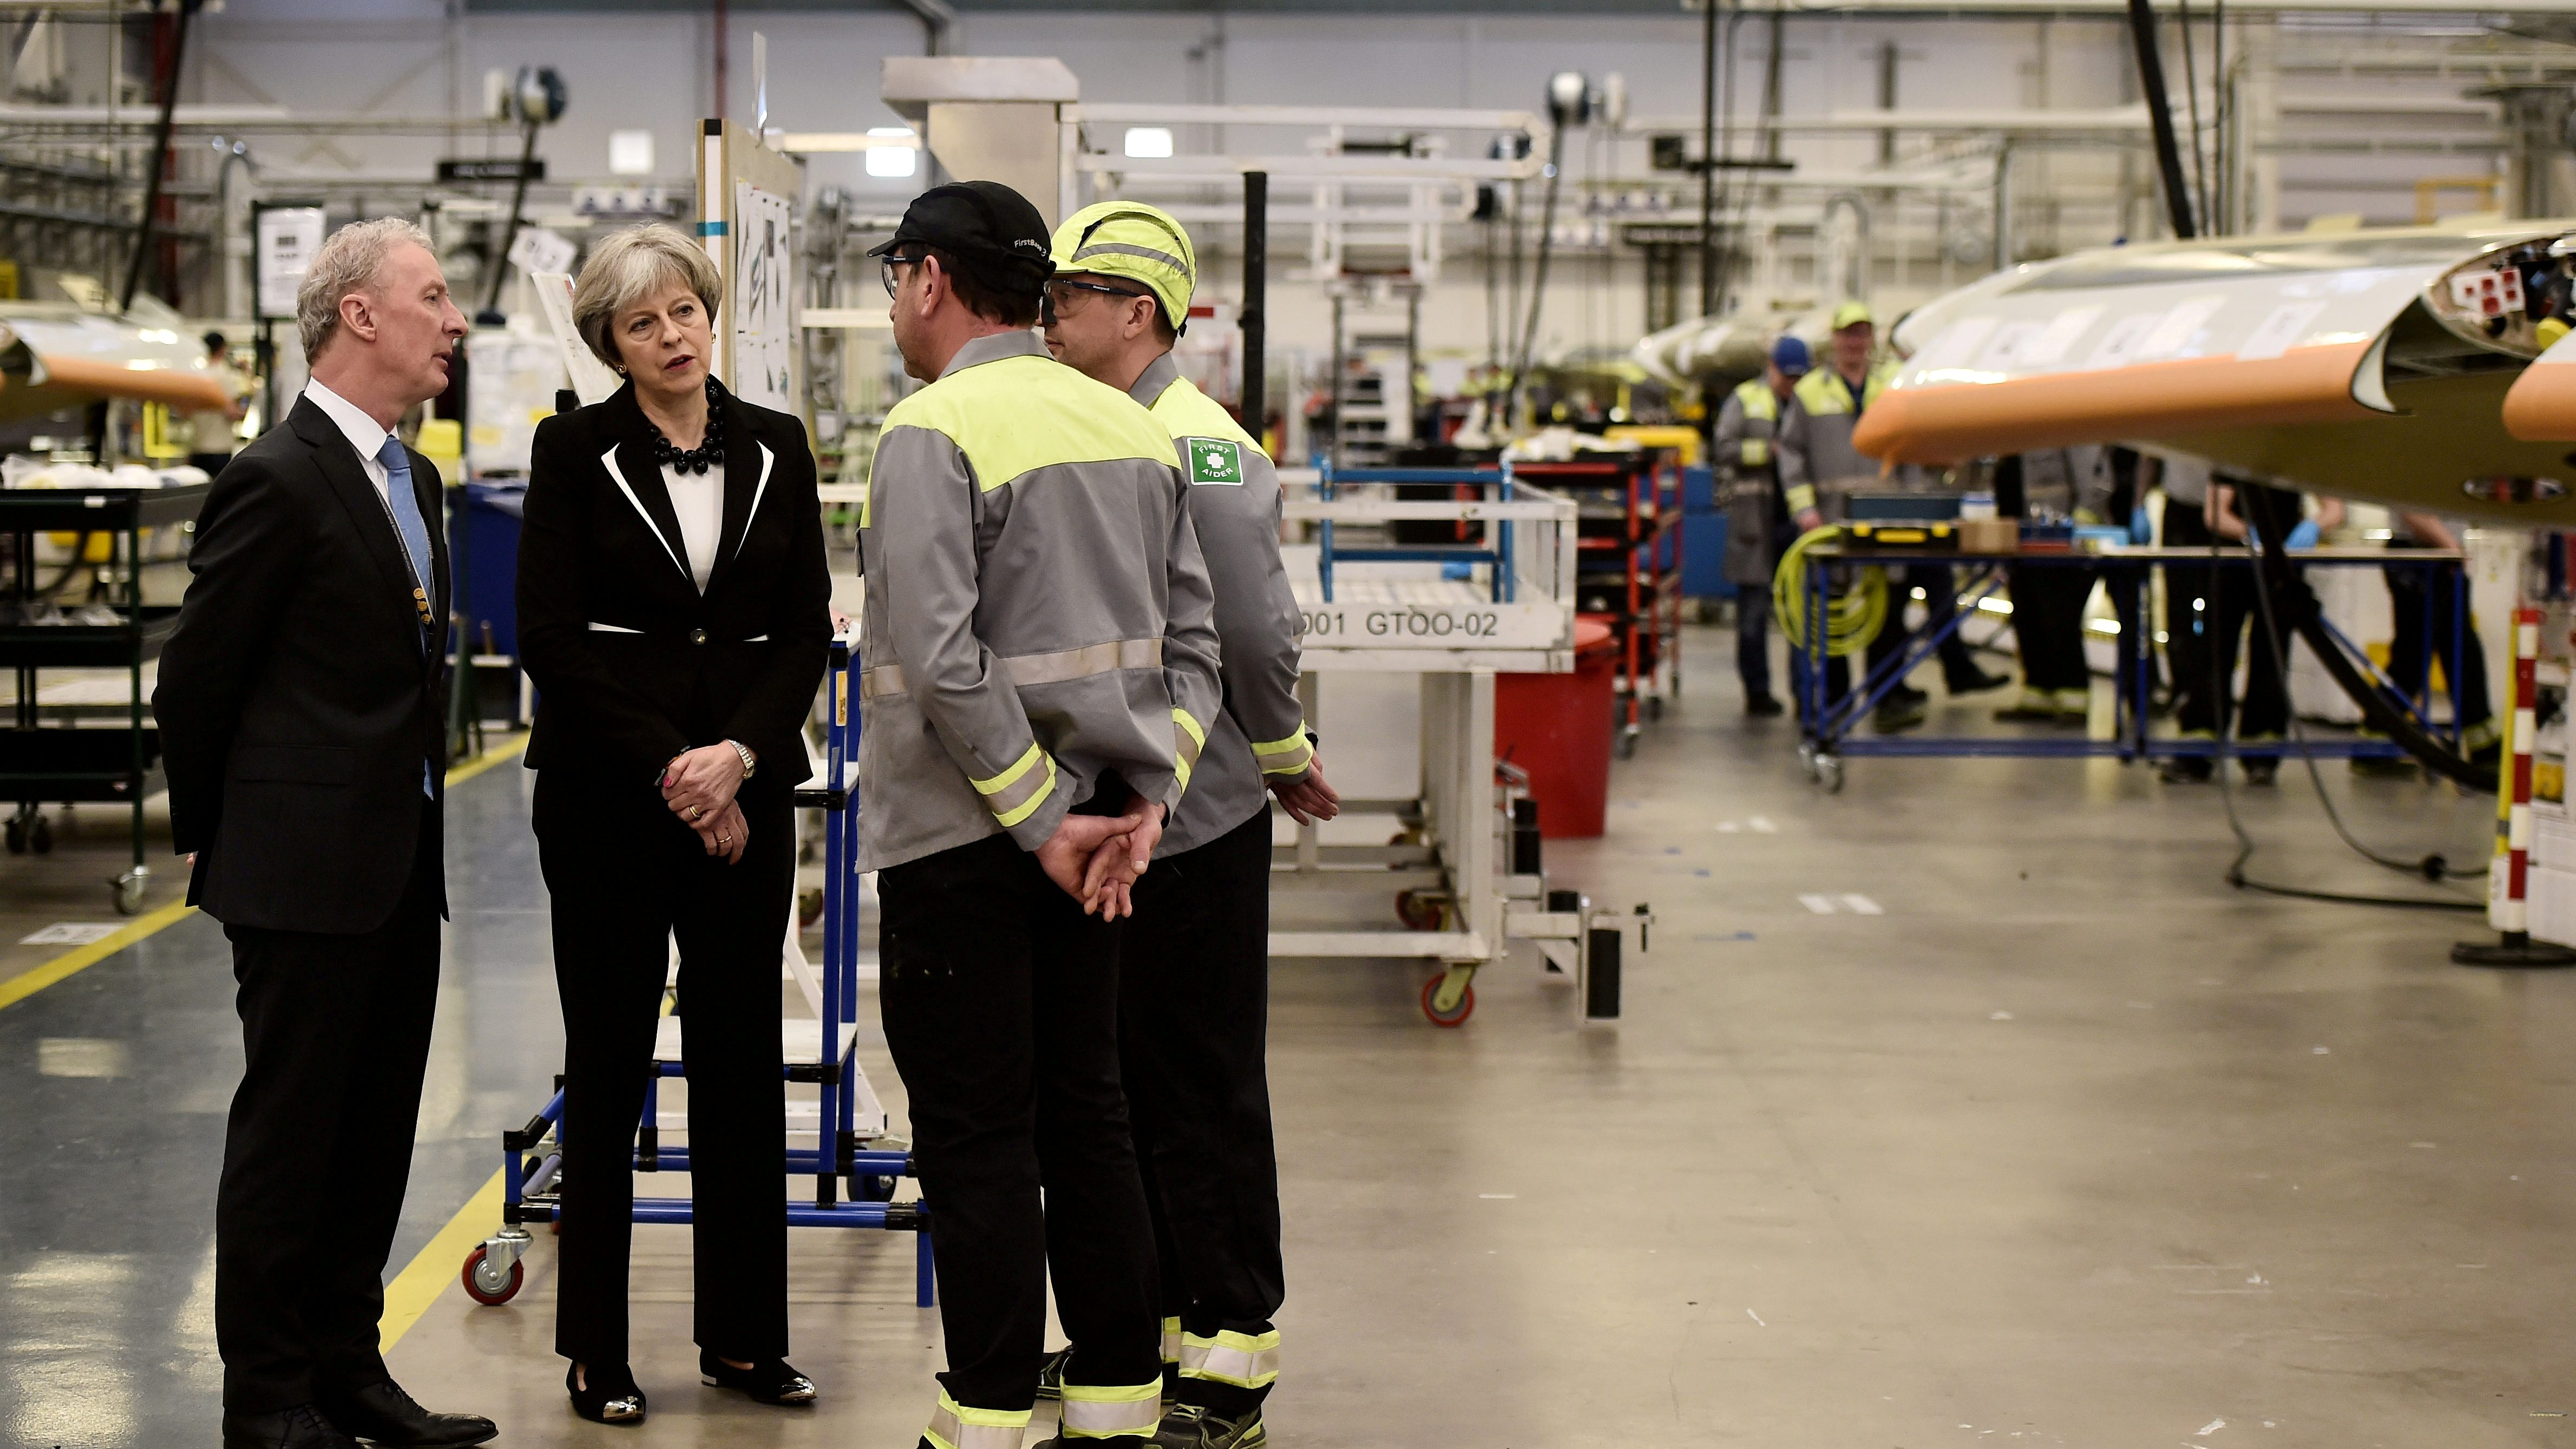 Britain's Prime Minister Theresa May speaks to workers at a factory